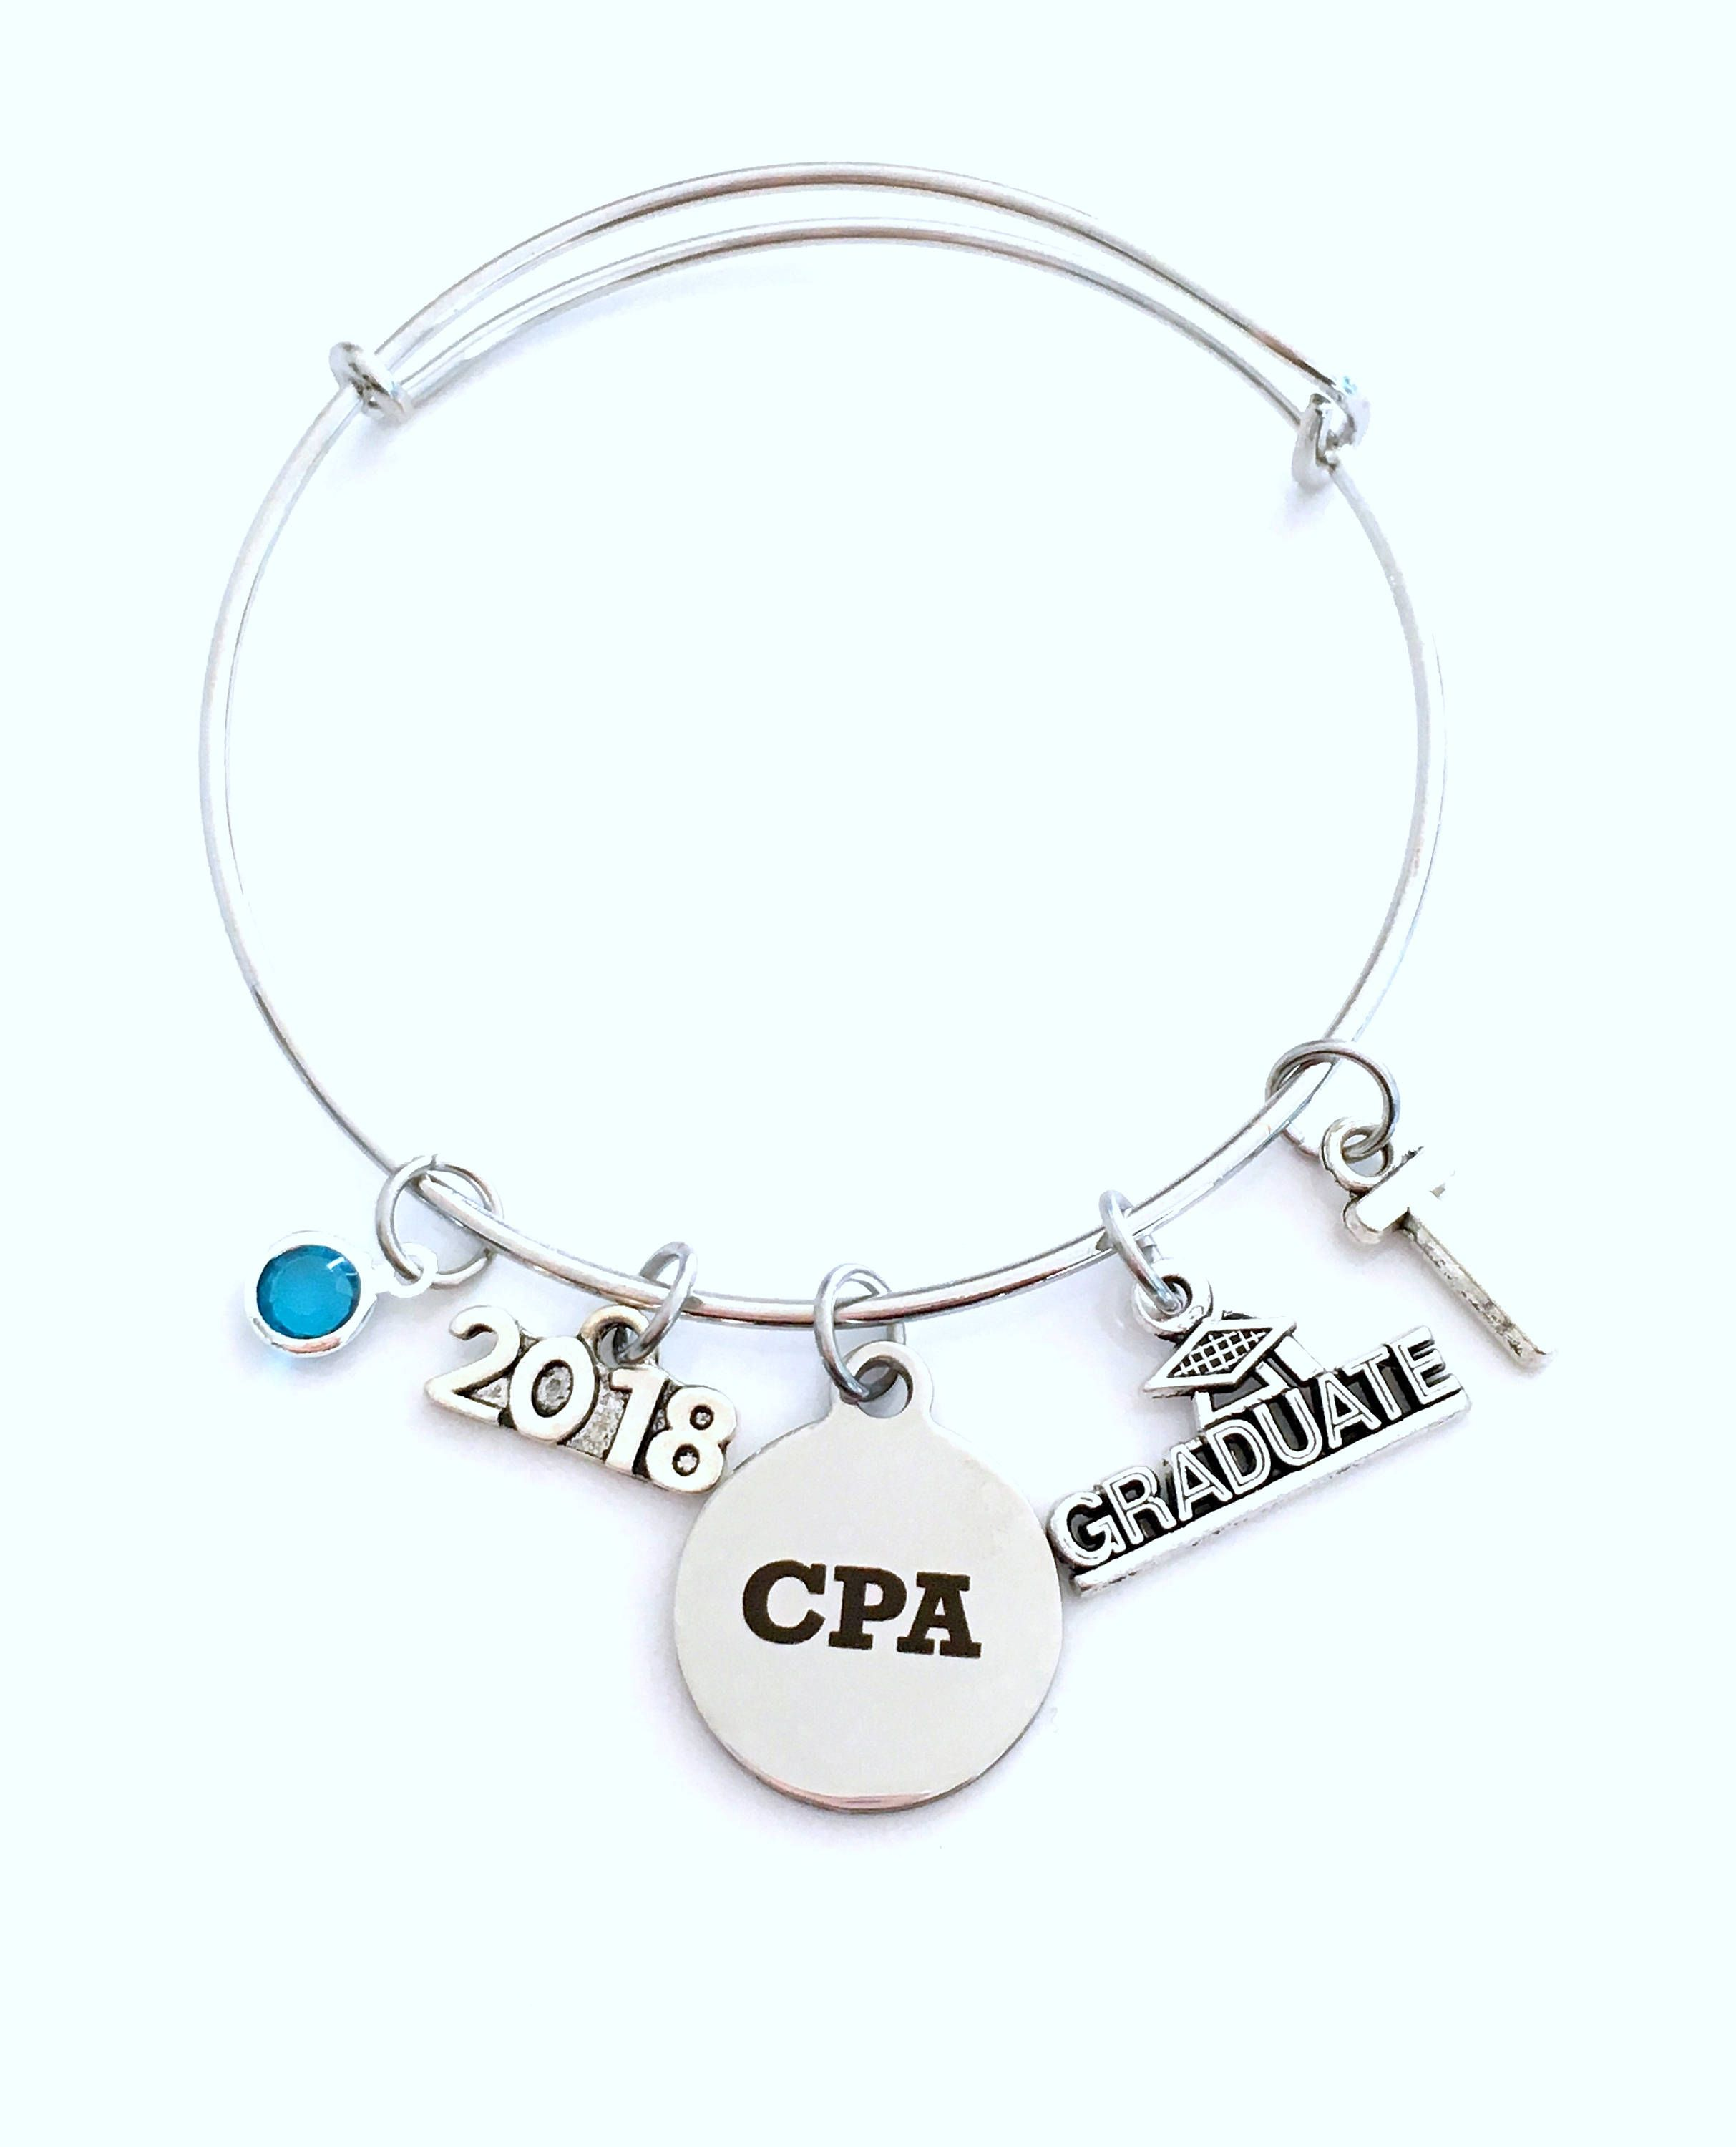 Chartered Accountant Cpa Graduation Gift For Cpa 2018 Charm Bracelet Chartered Accountant